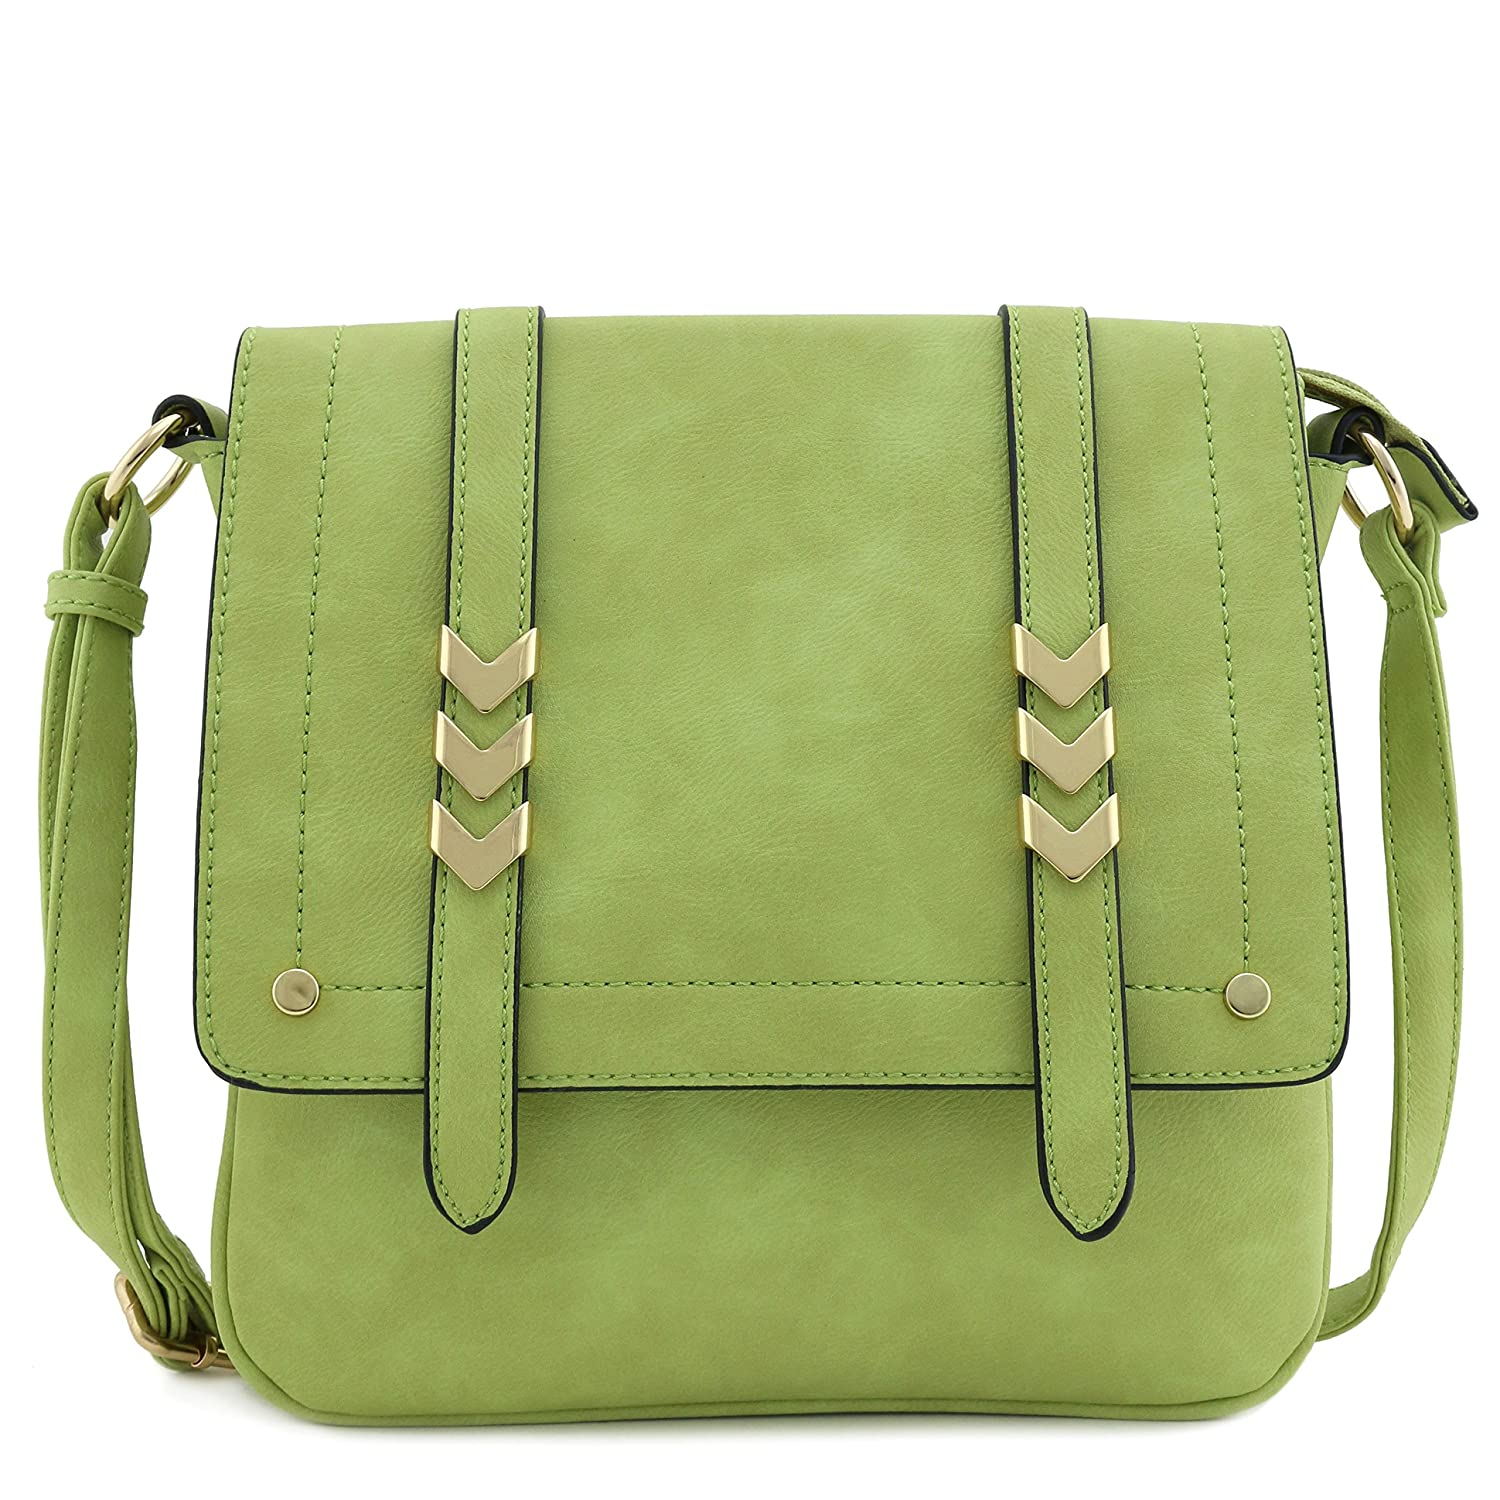 c6dc61b4648b Double Compartment Large Flap Over Crossbody Bag Apple Green  Handbags   Amazon.com